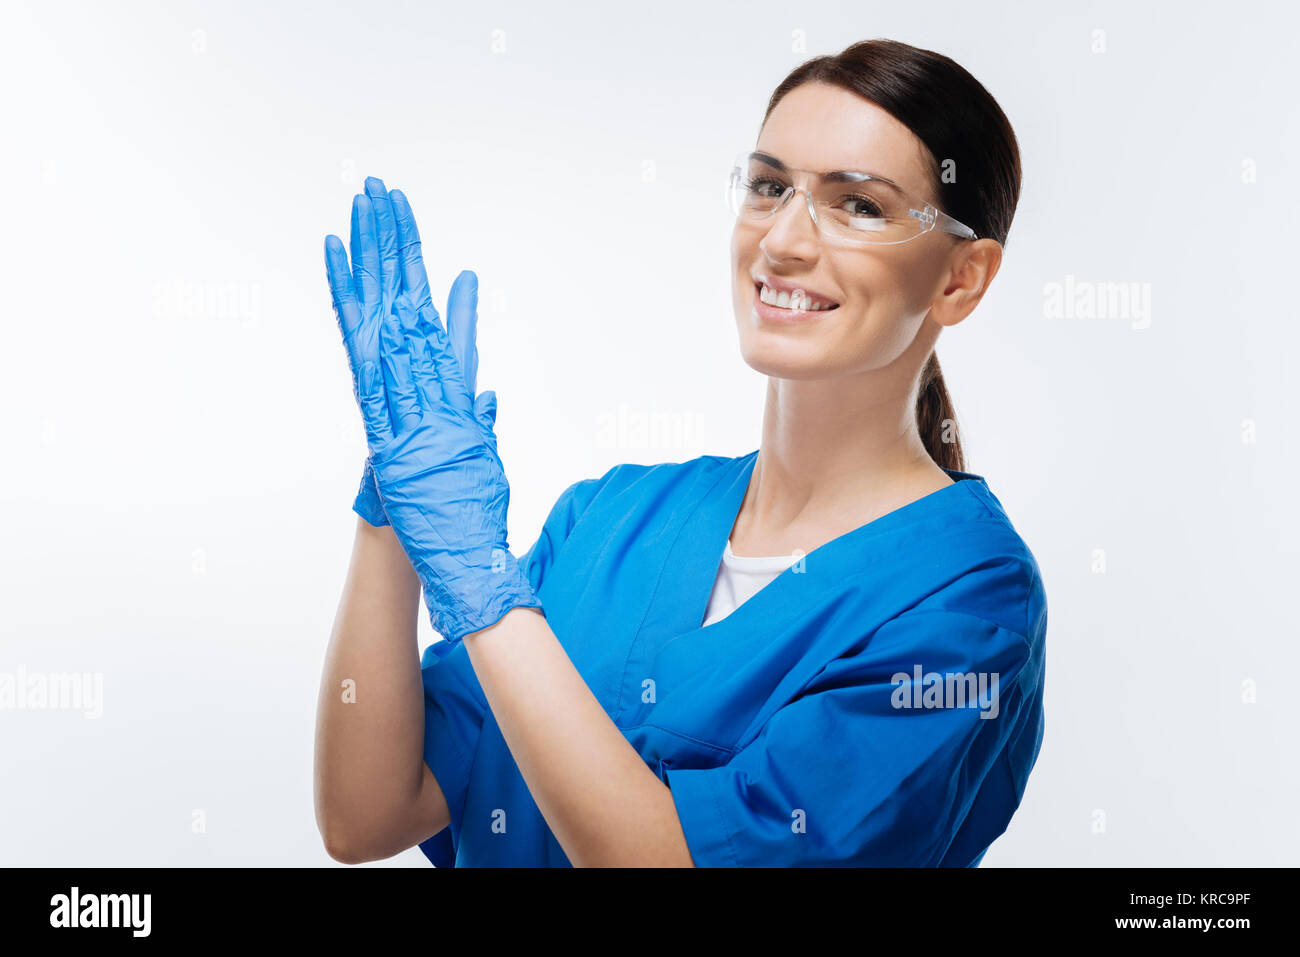 Apologise, Hand job lab interesting